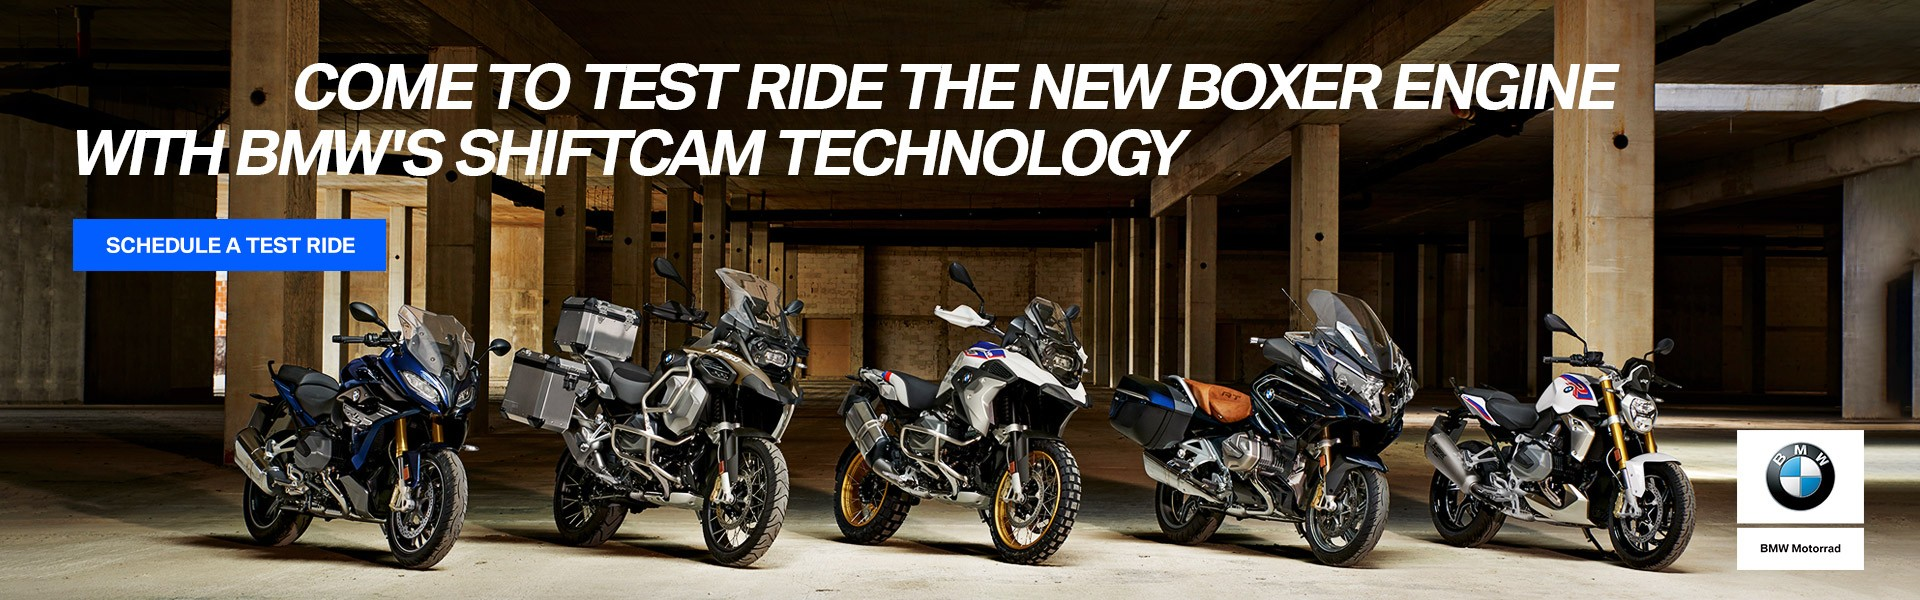 Schedule a Test Ride - Come to Test Ride the new boxer engine with BMW's shiftcam technology